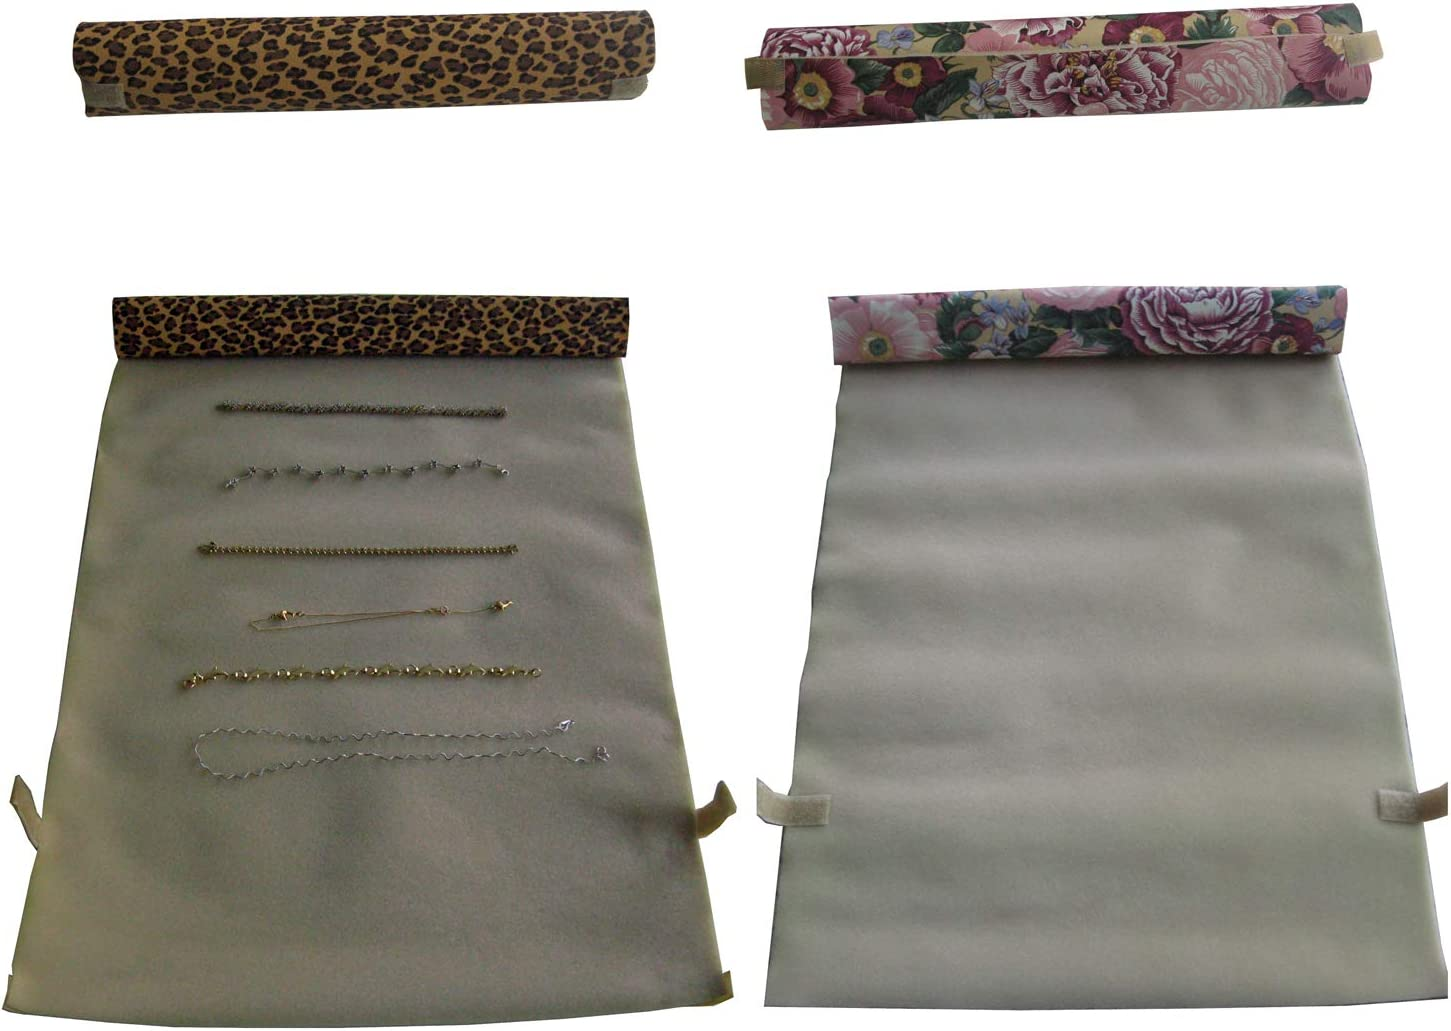 Unroll Them Later and find All Your Jewelry Exactly as You Placed Them Earrings Each unrolls to 13 x 26 Set of 2 Rings 2 pc Organize Travel Storage roll ups for Tangle Free Necklace Chains